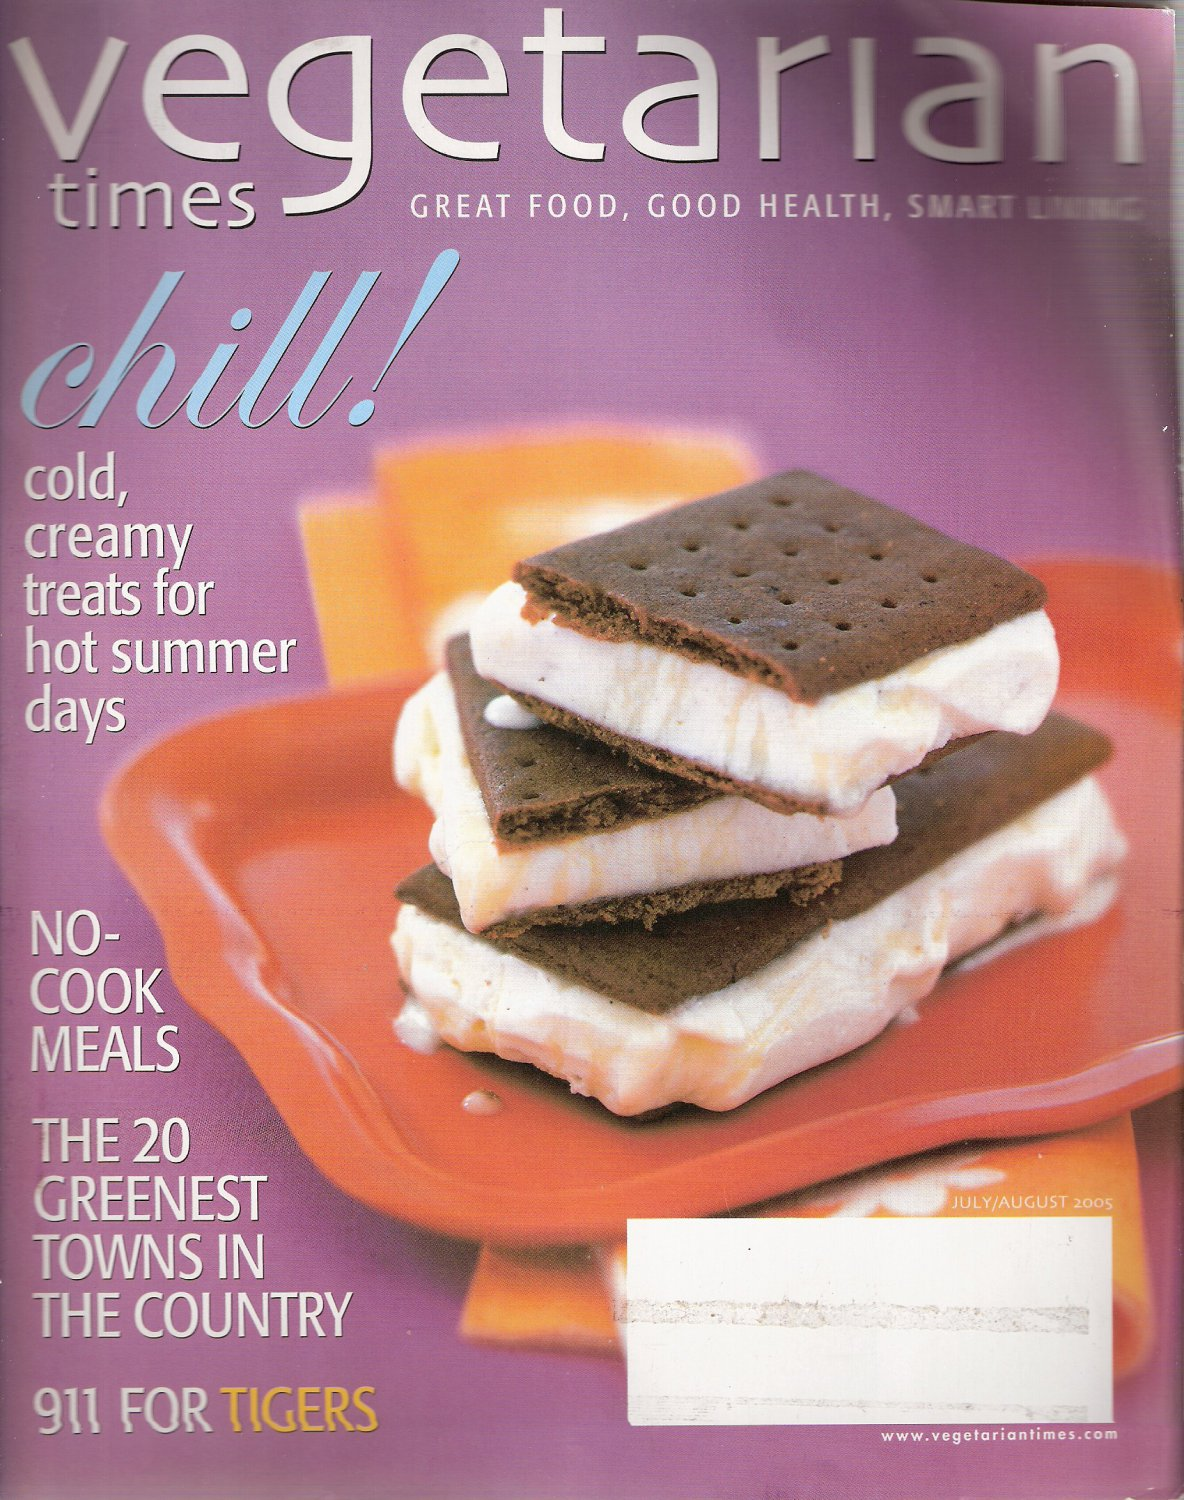 Vegetarian Times Magazine July/August 2005 Cold, Creamy Treats